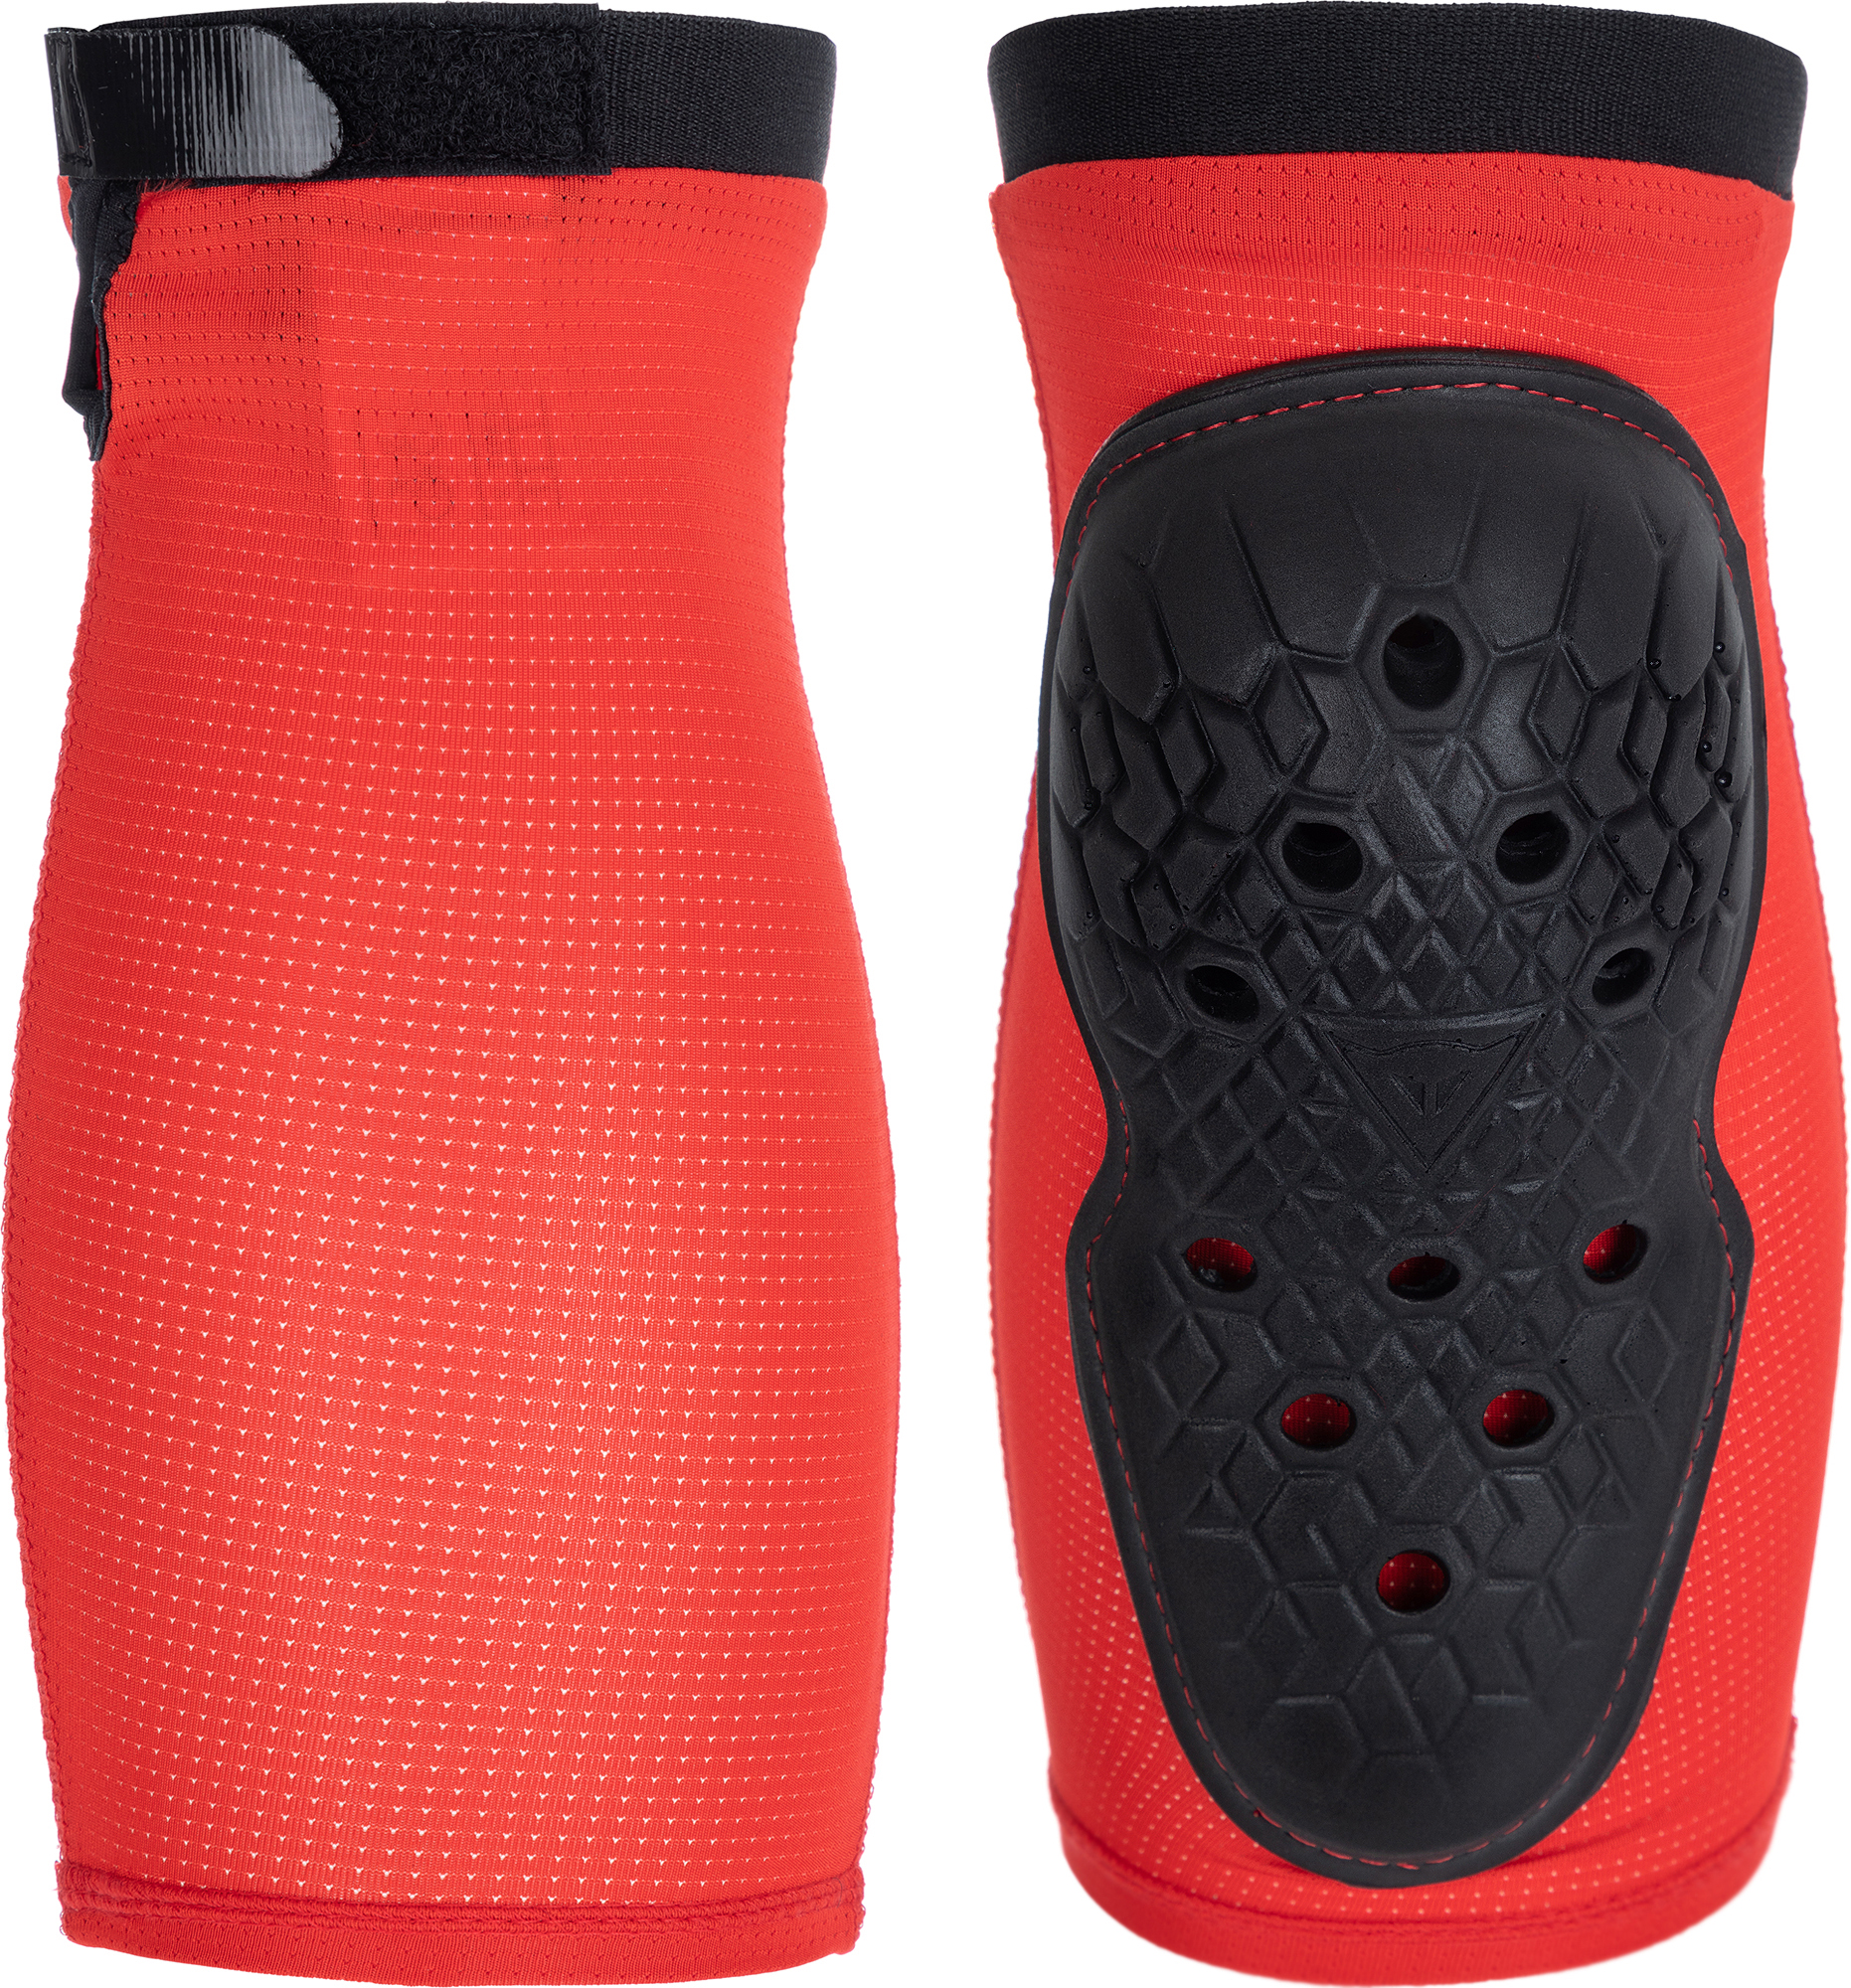 Dainese Защита колен Dainese SCARABEO KNEE GUARDS